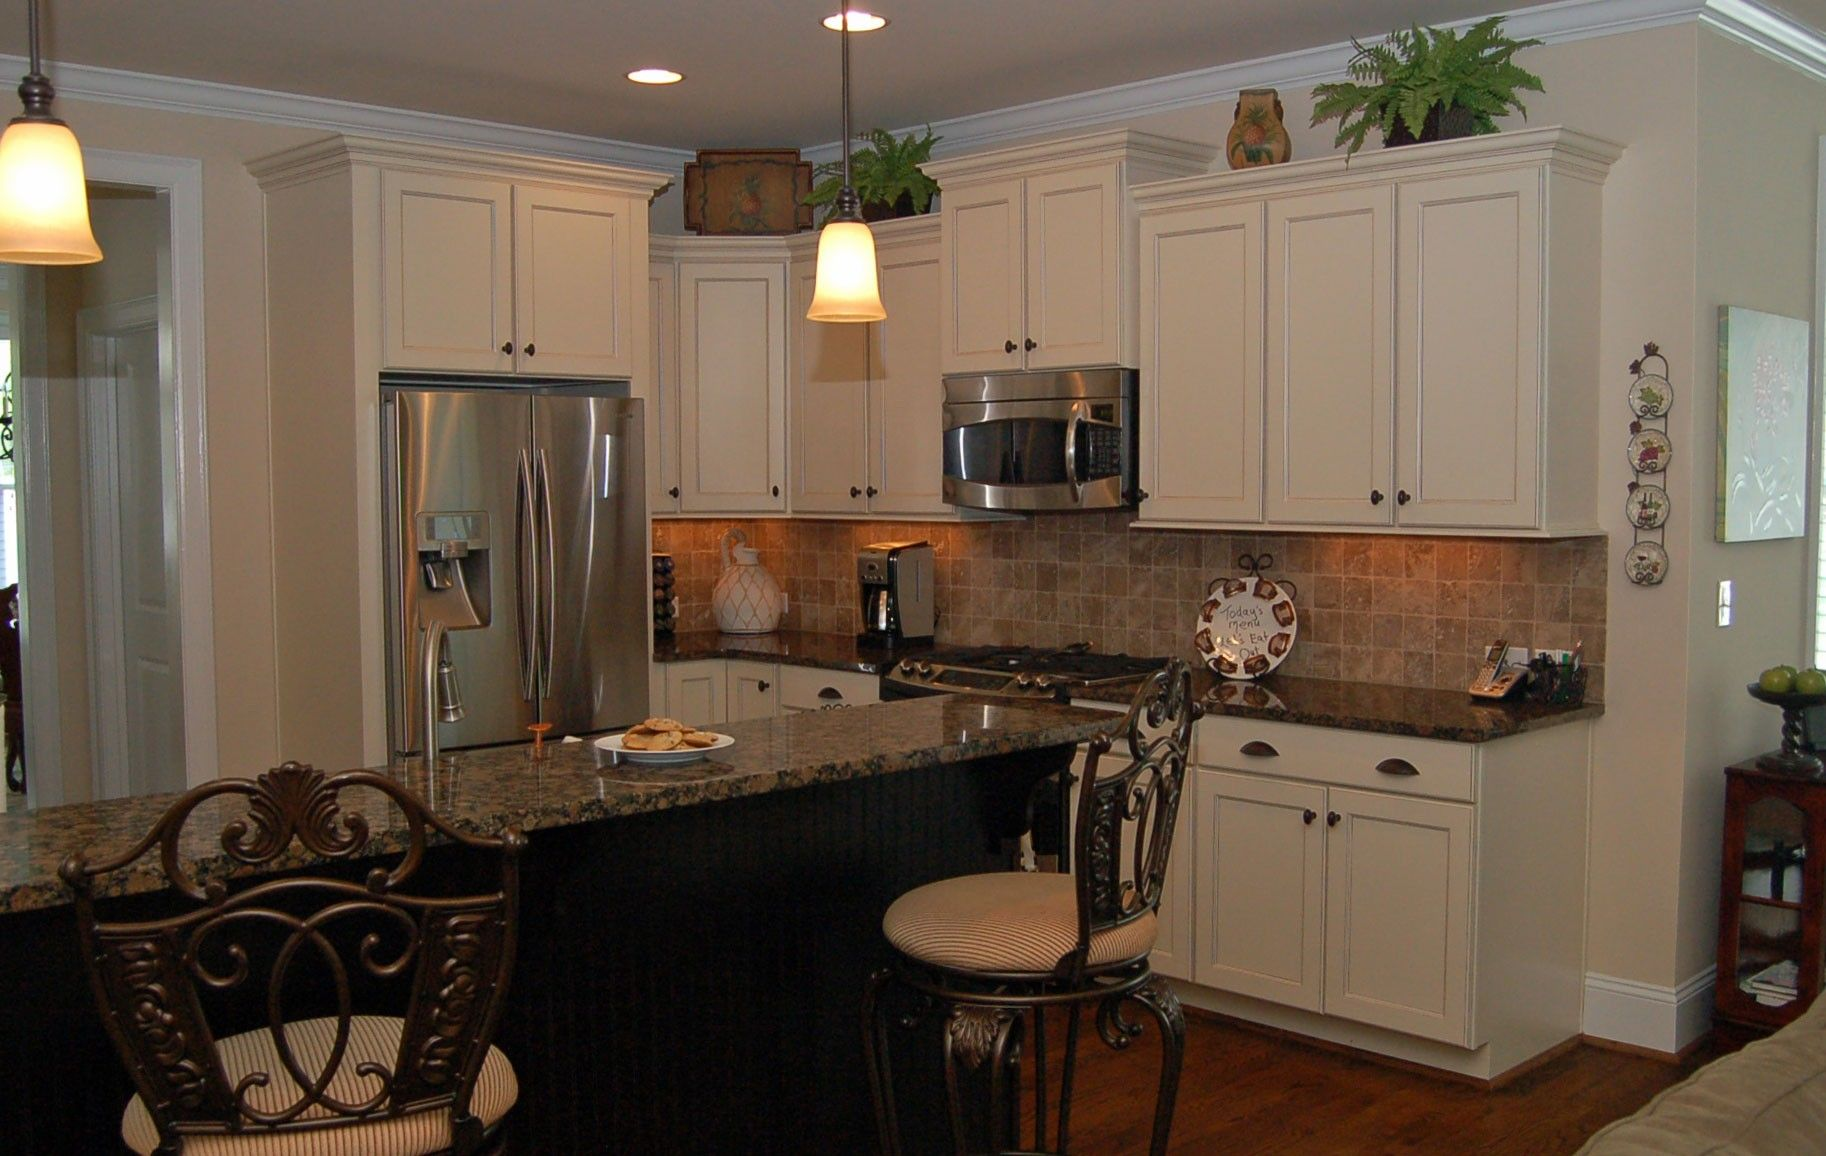 Find Kitchen Cabinets Granite Kitchen Countertops With Wood Cabinets Google